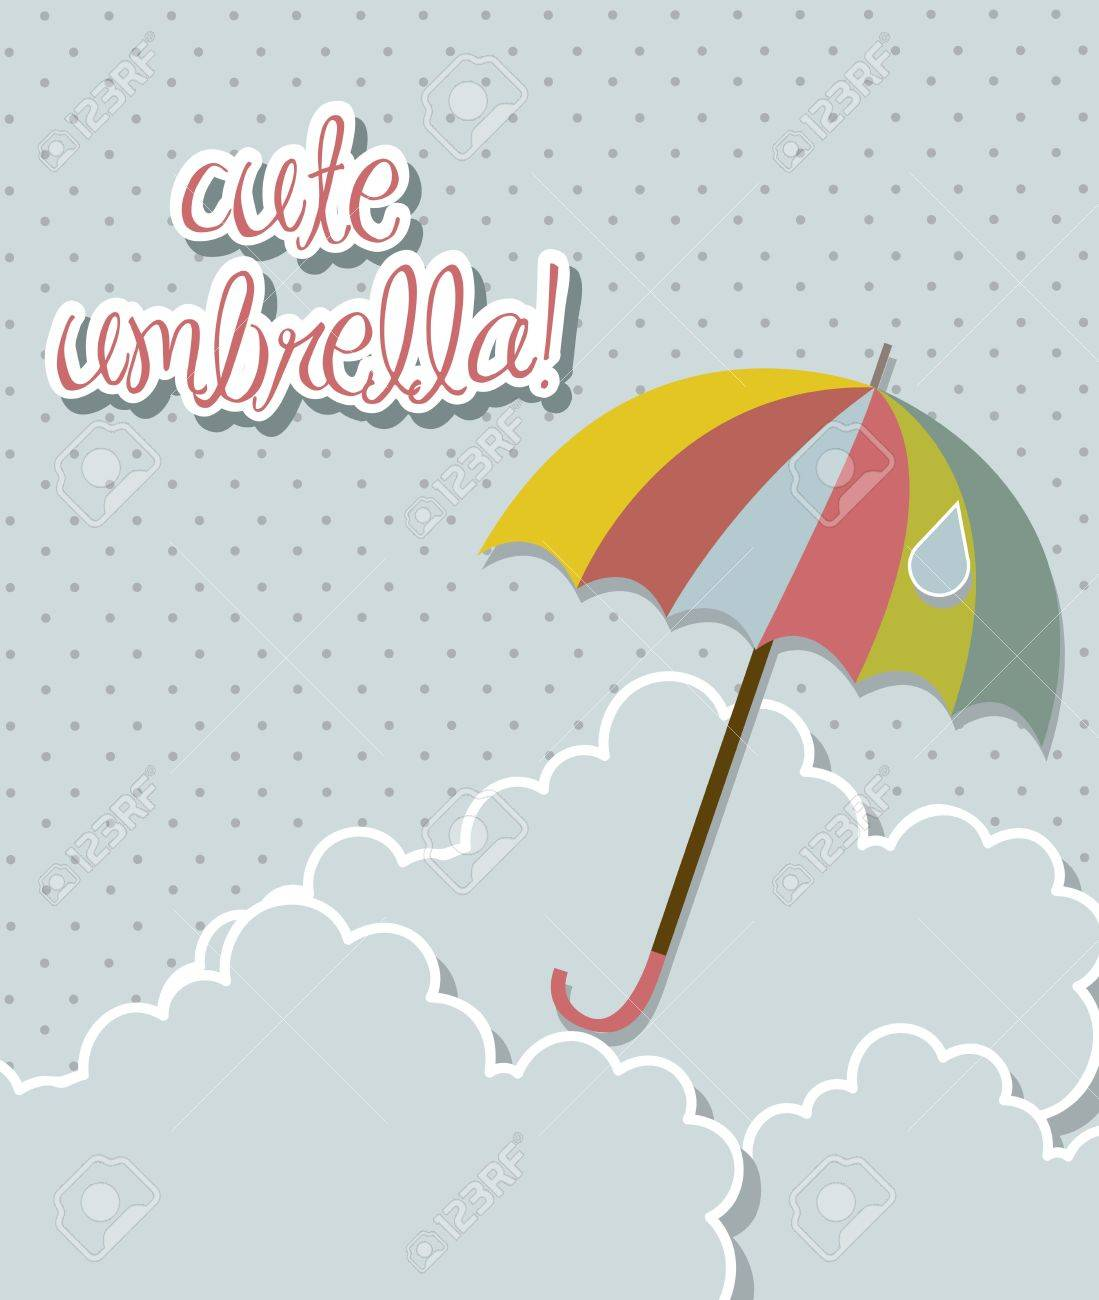 cute umbrella with clouds over sky background. vector illustration Stock Vector - 15379313